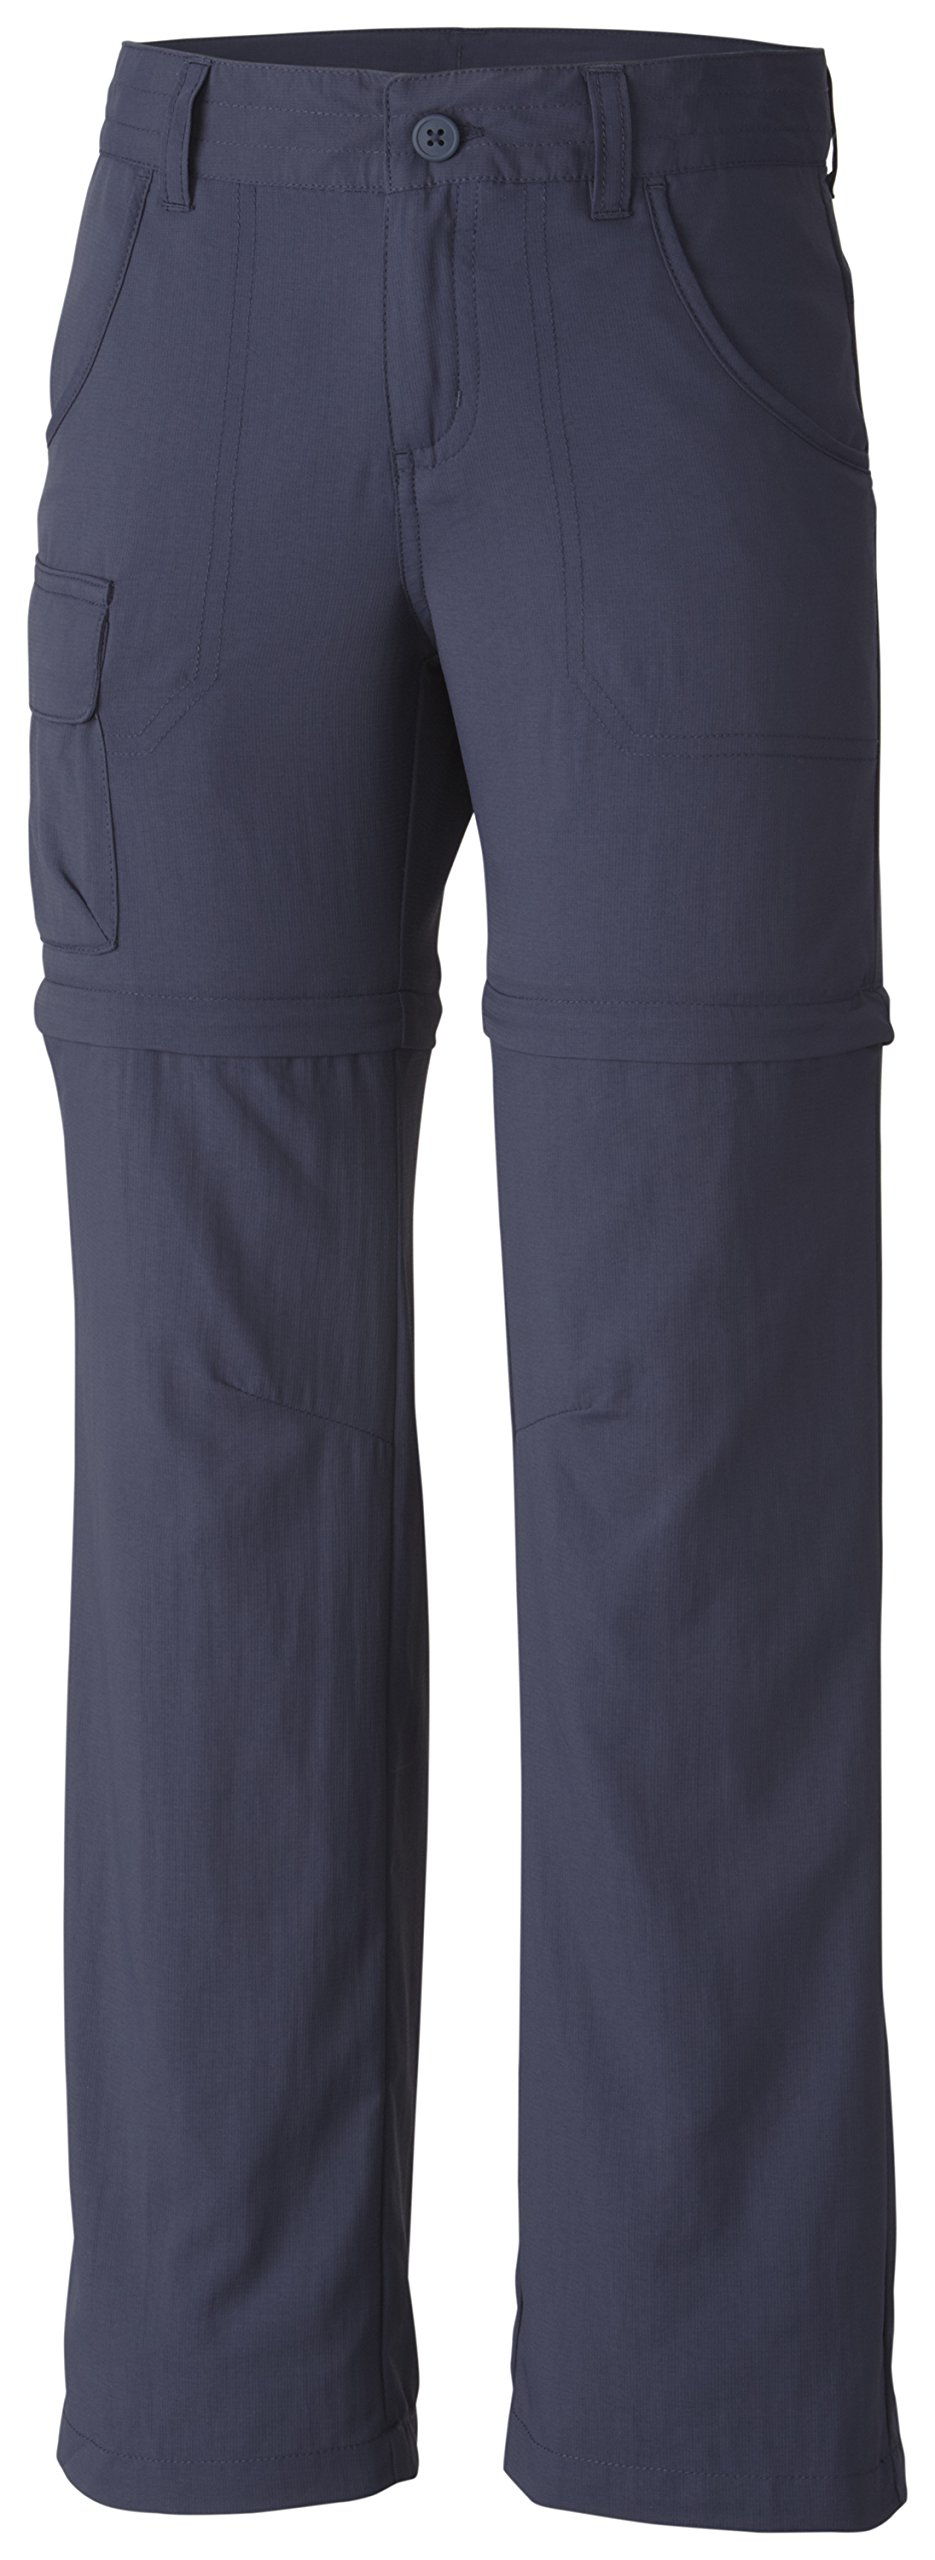 Columbia Youth Girls Silver Ridge III Convertible Sun Pants, Moisture Wicking, Nocturnal, Small by Columbia